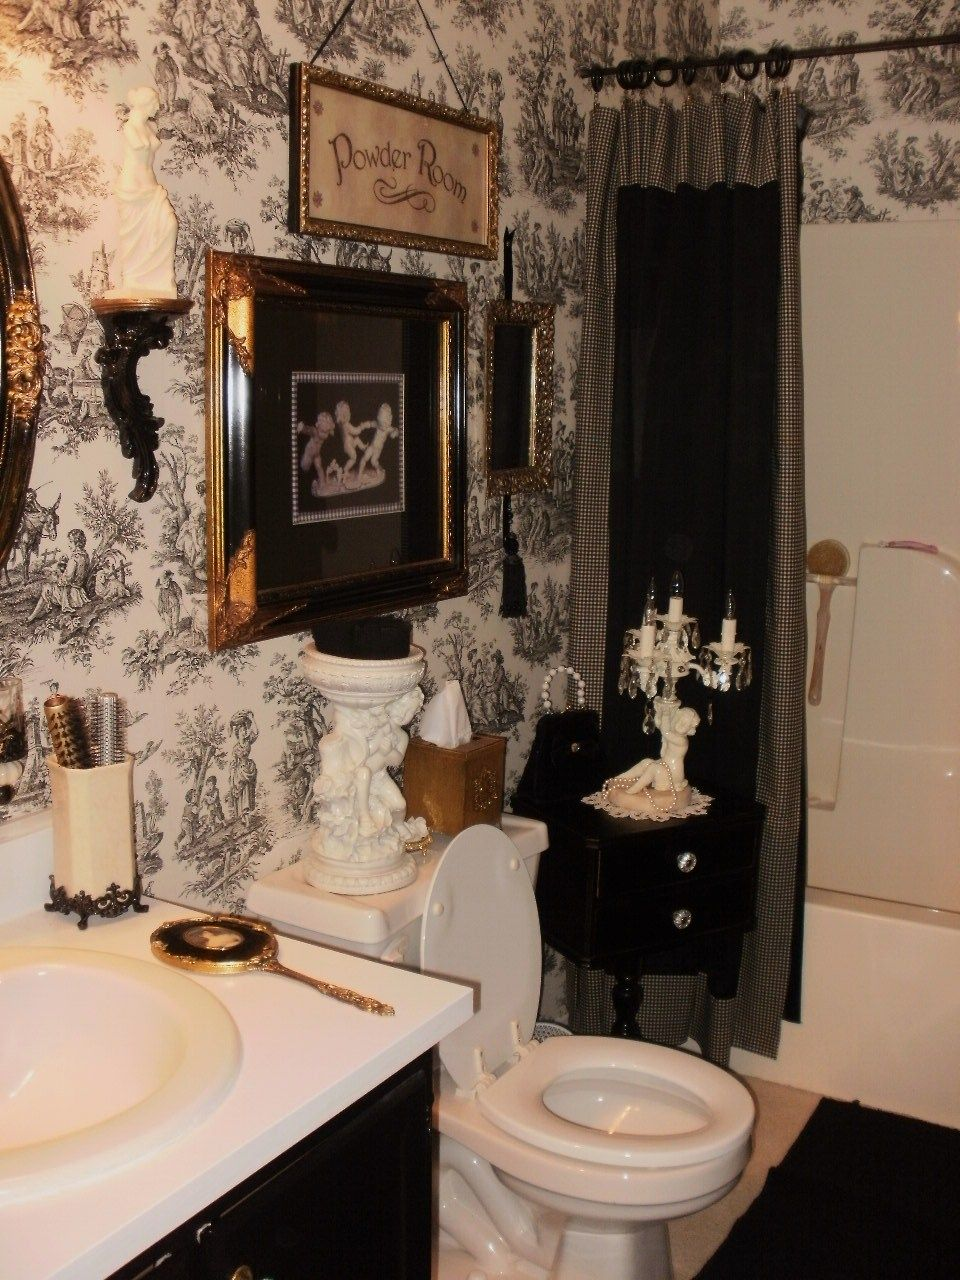 My Friend Lauras Beautiful Toile Bathroom Charles Faudree Toile Wallpaper Toile Bedding